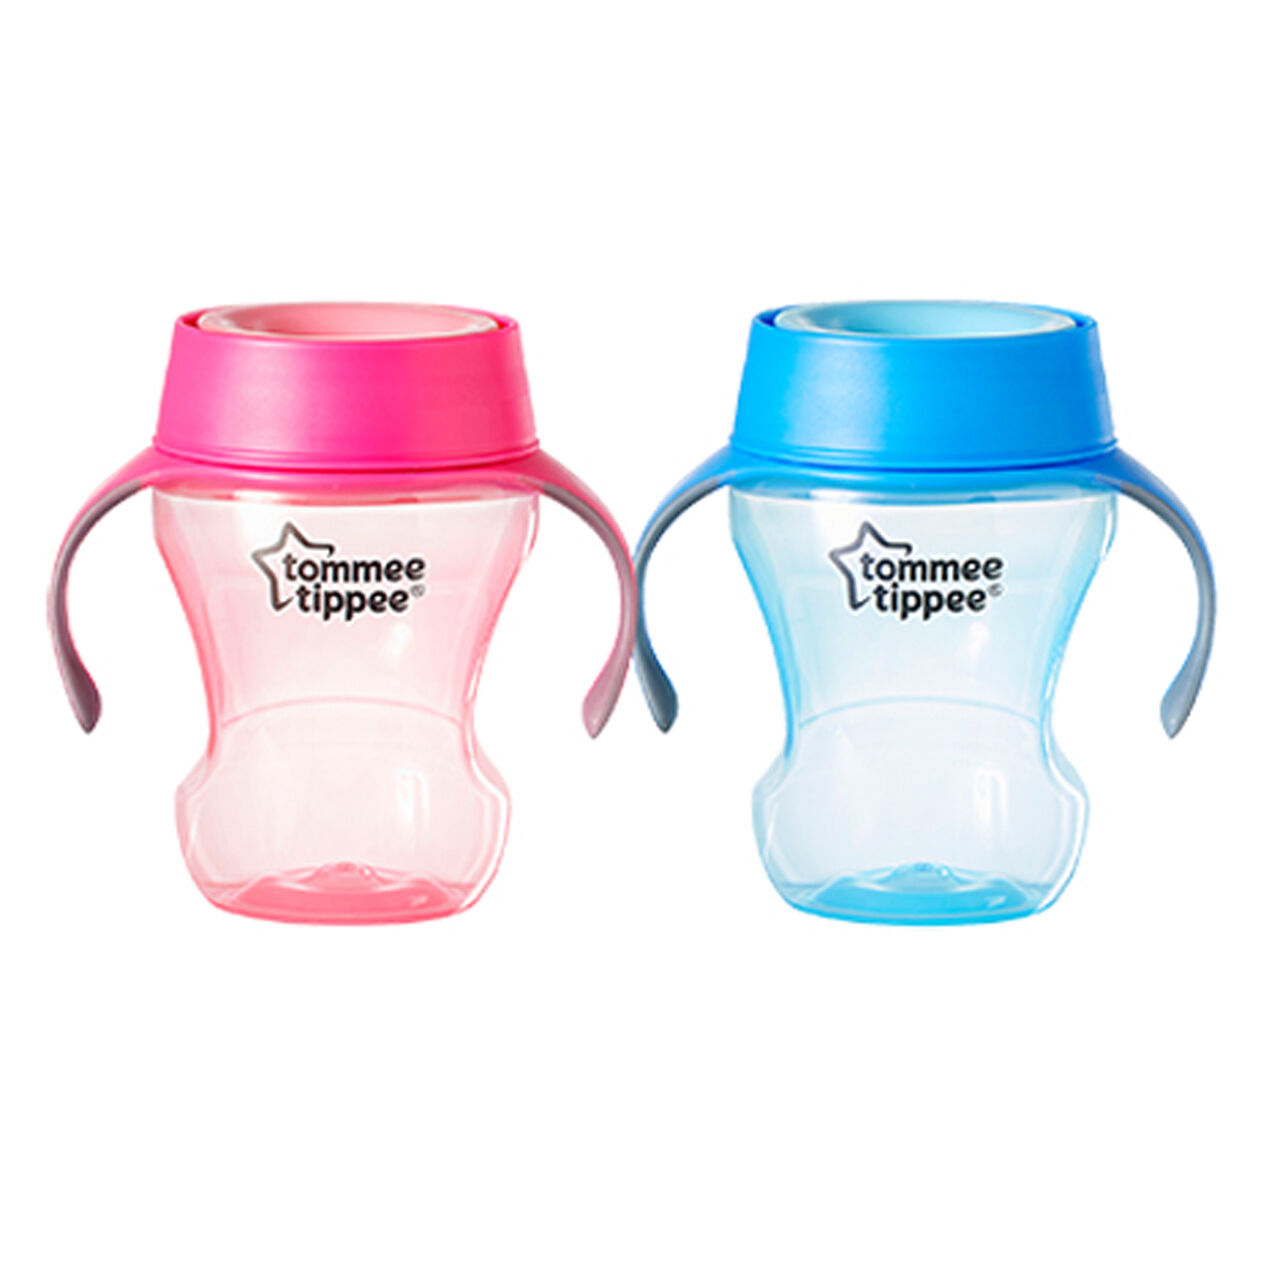 Promo Munchkin Miracle 360 Trainer Cup Pink Termurah 2018 Kapas Bulat Babysafe 2pack Tommee Tippee Mealtime Or Blue 760 1 Of 1free Shipping